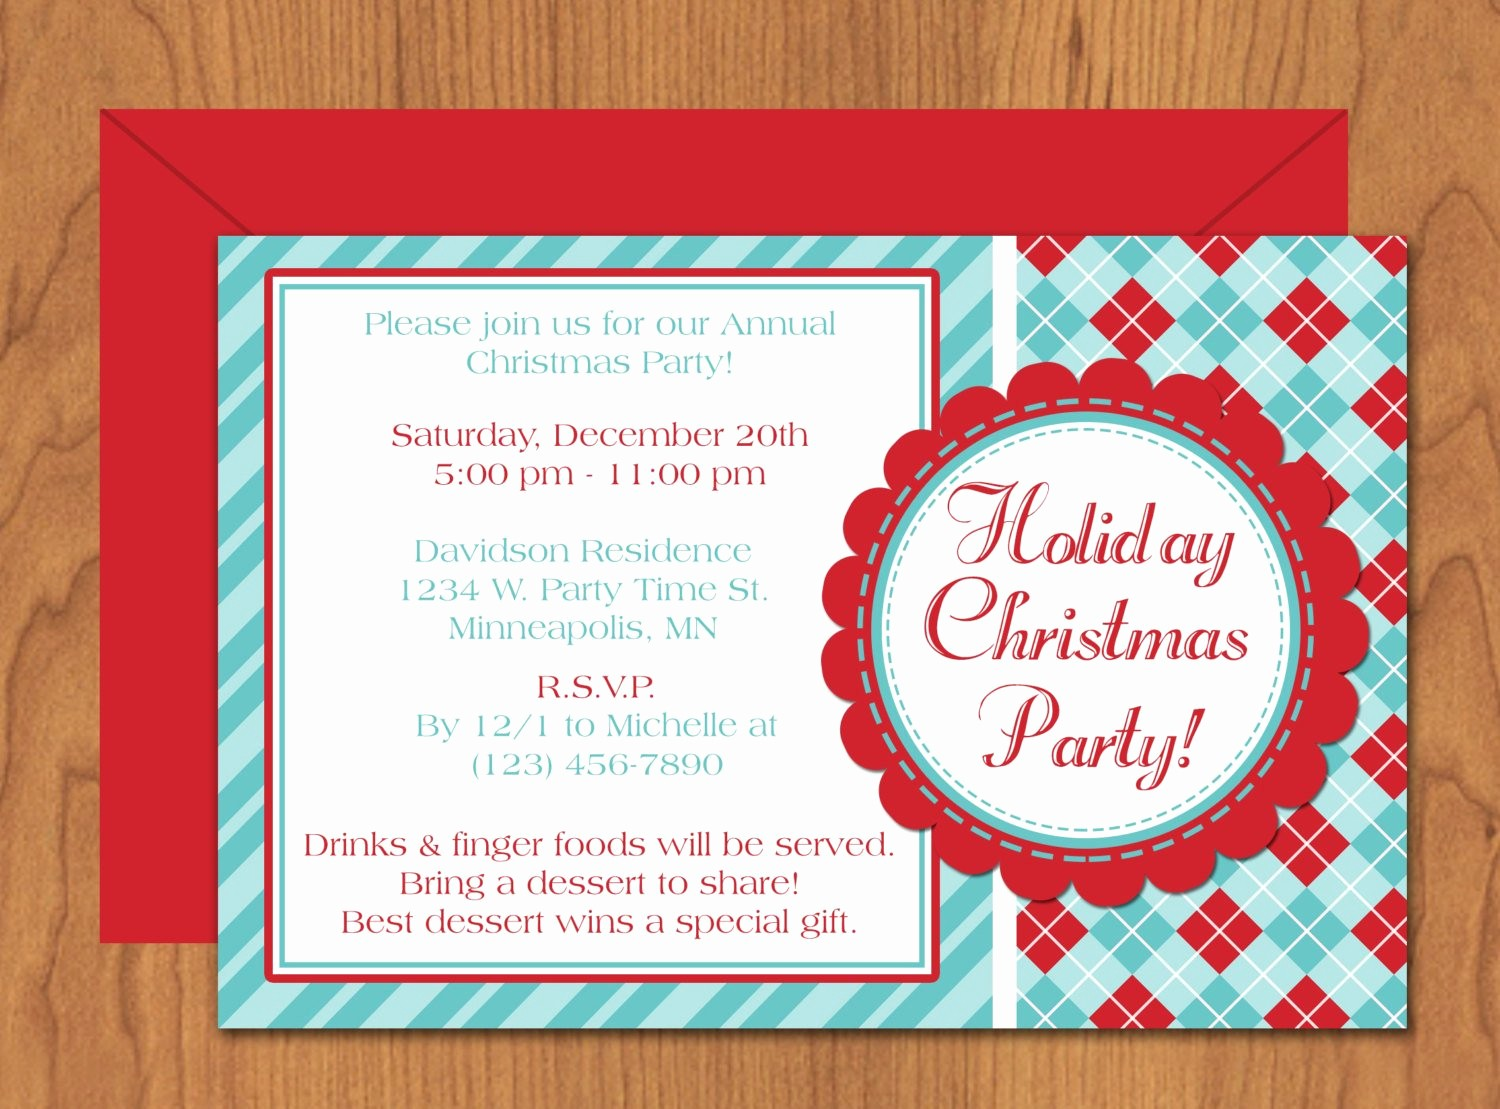 Christmas Invitations Templates Free Microsoft Elegant Christmas Party Invitation Editable Template Microsoft